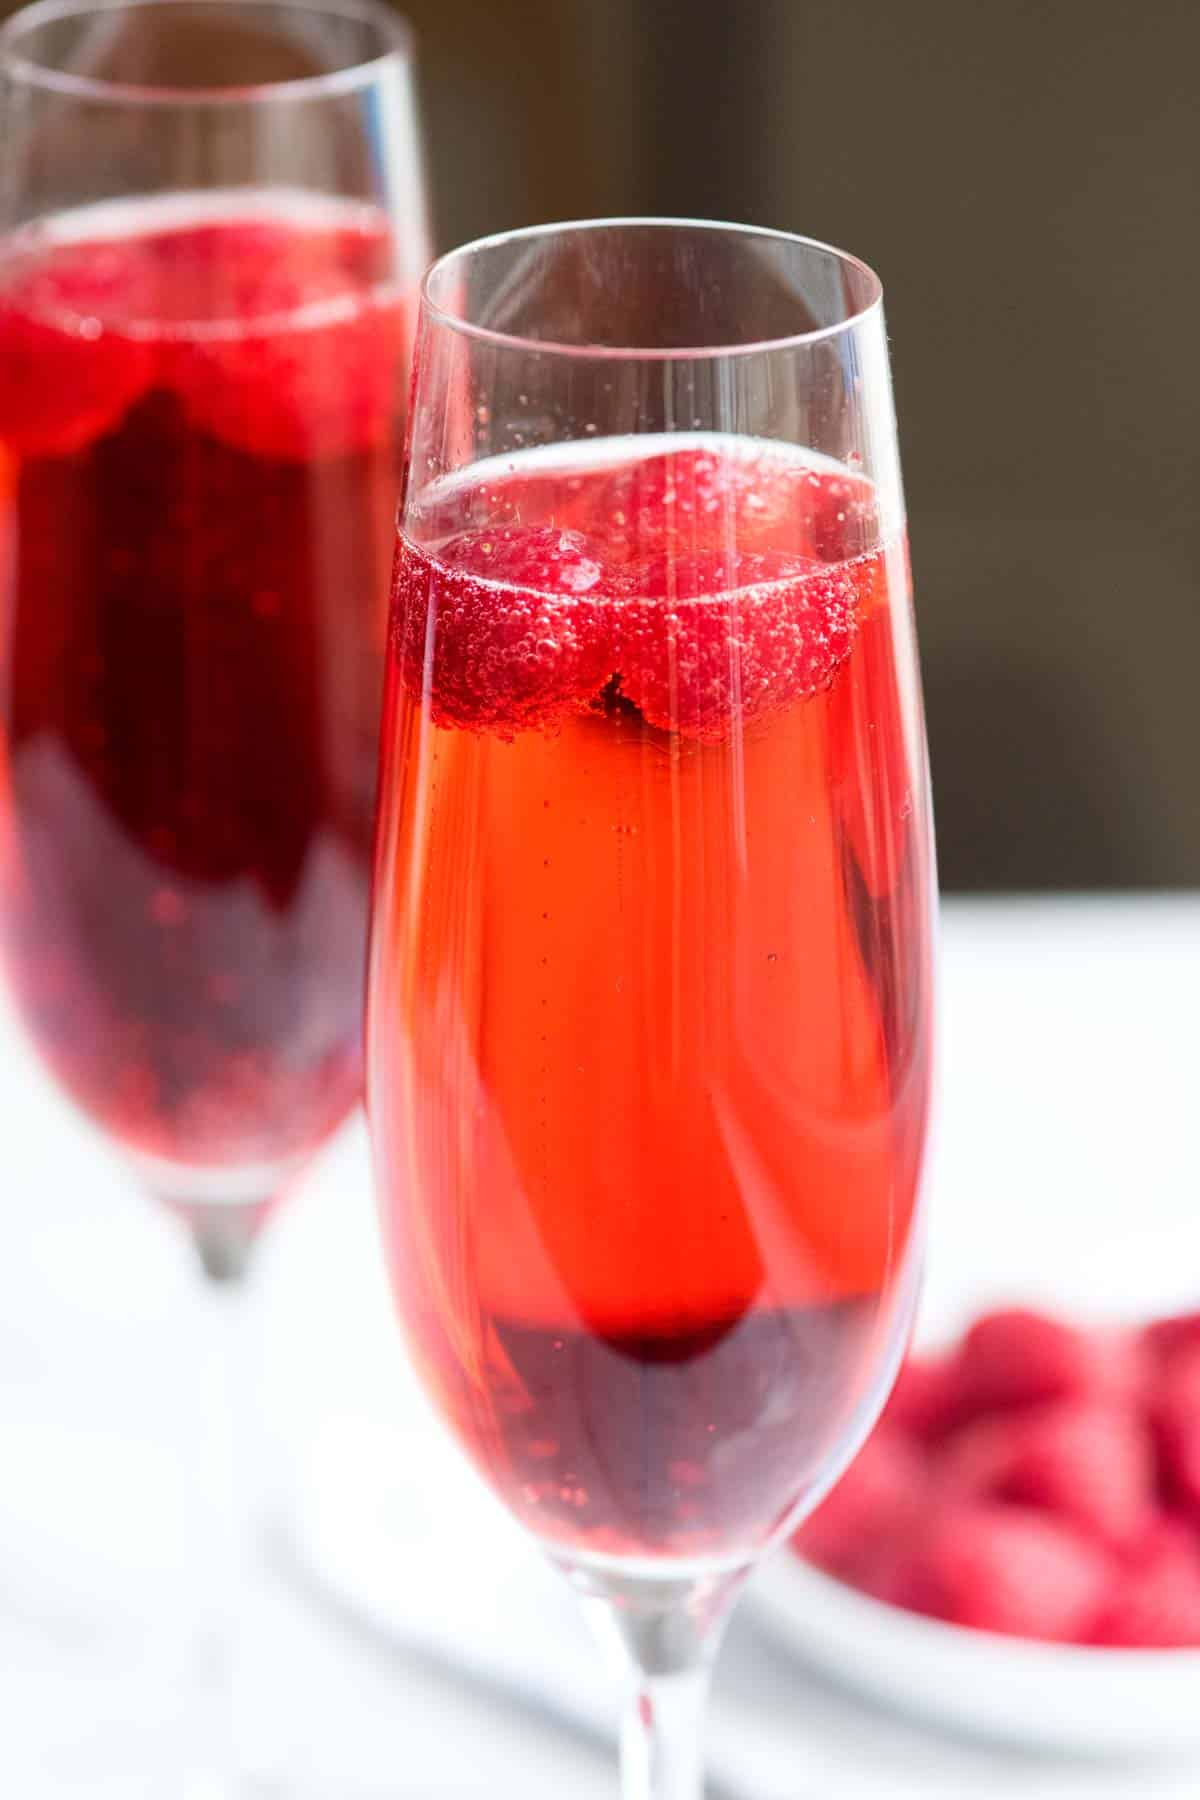 How to Make the Best Kir Royale